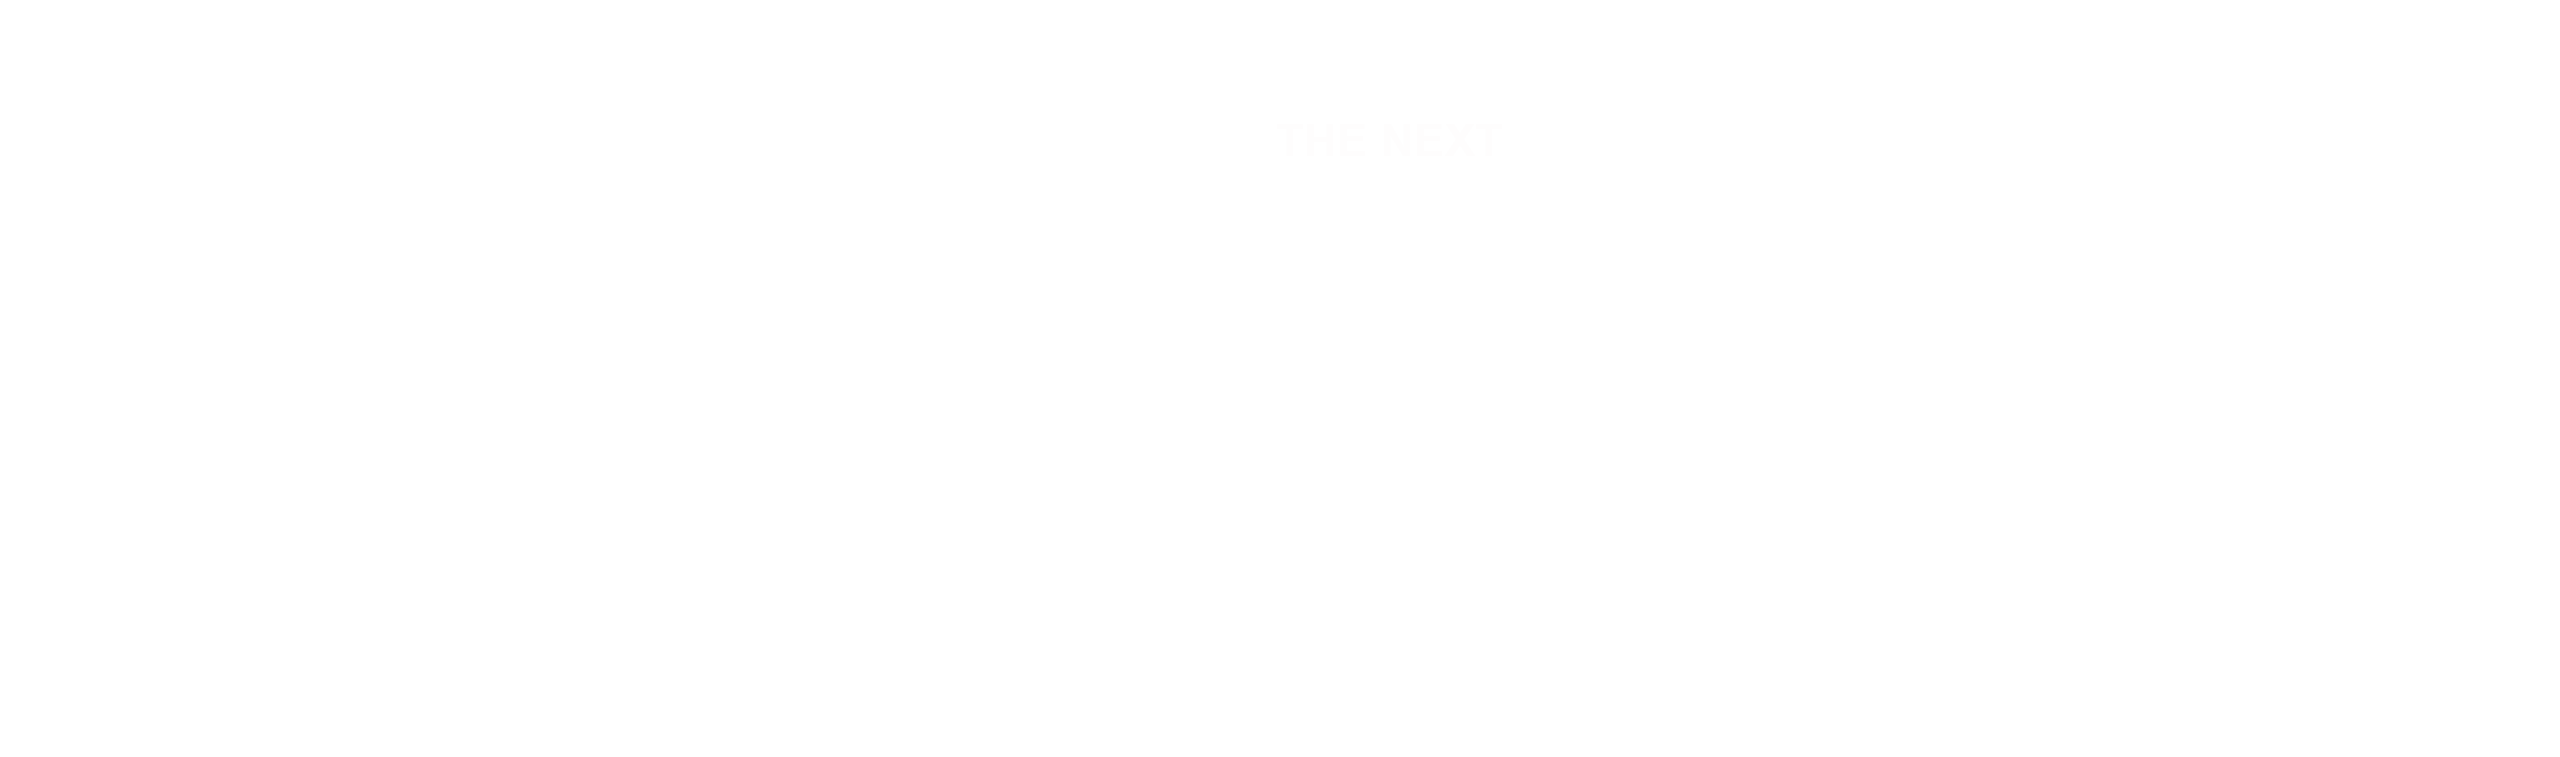 004 the next